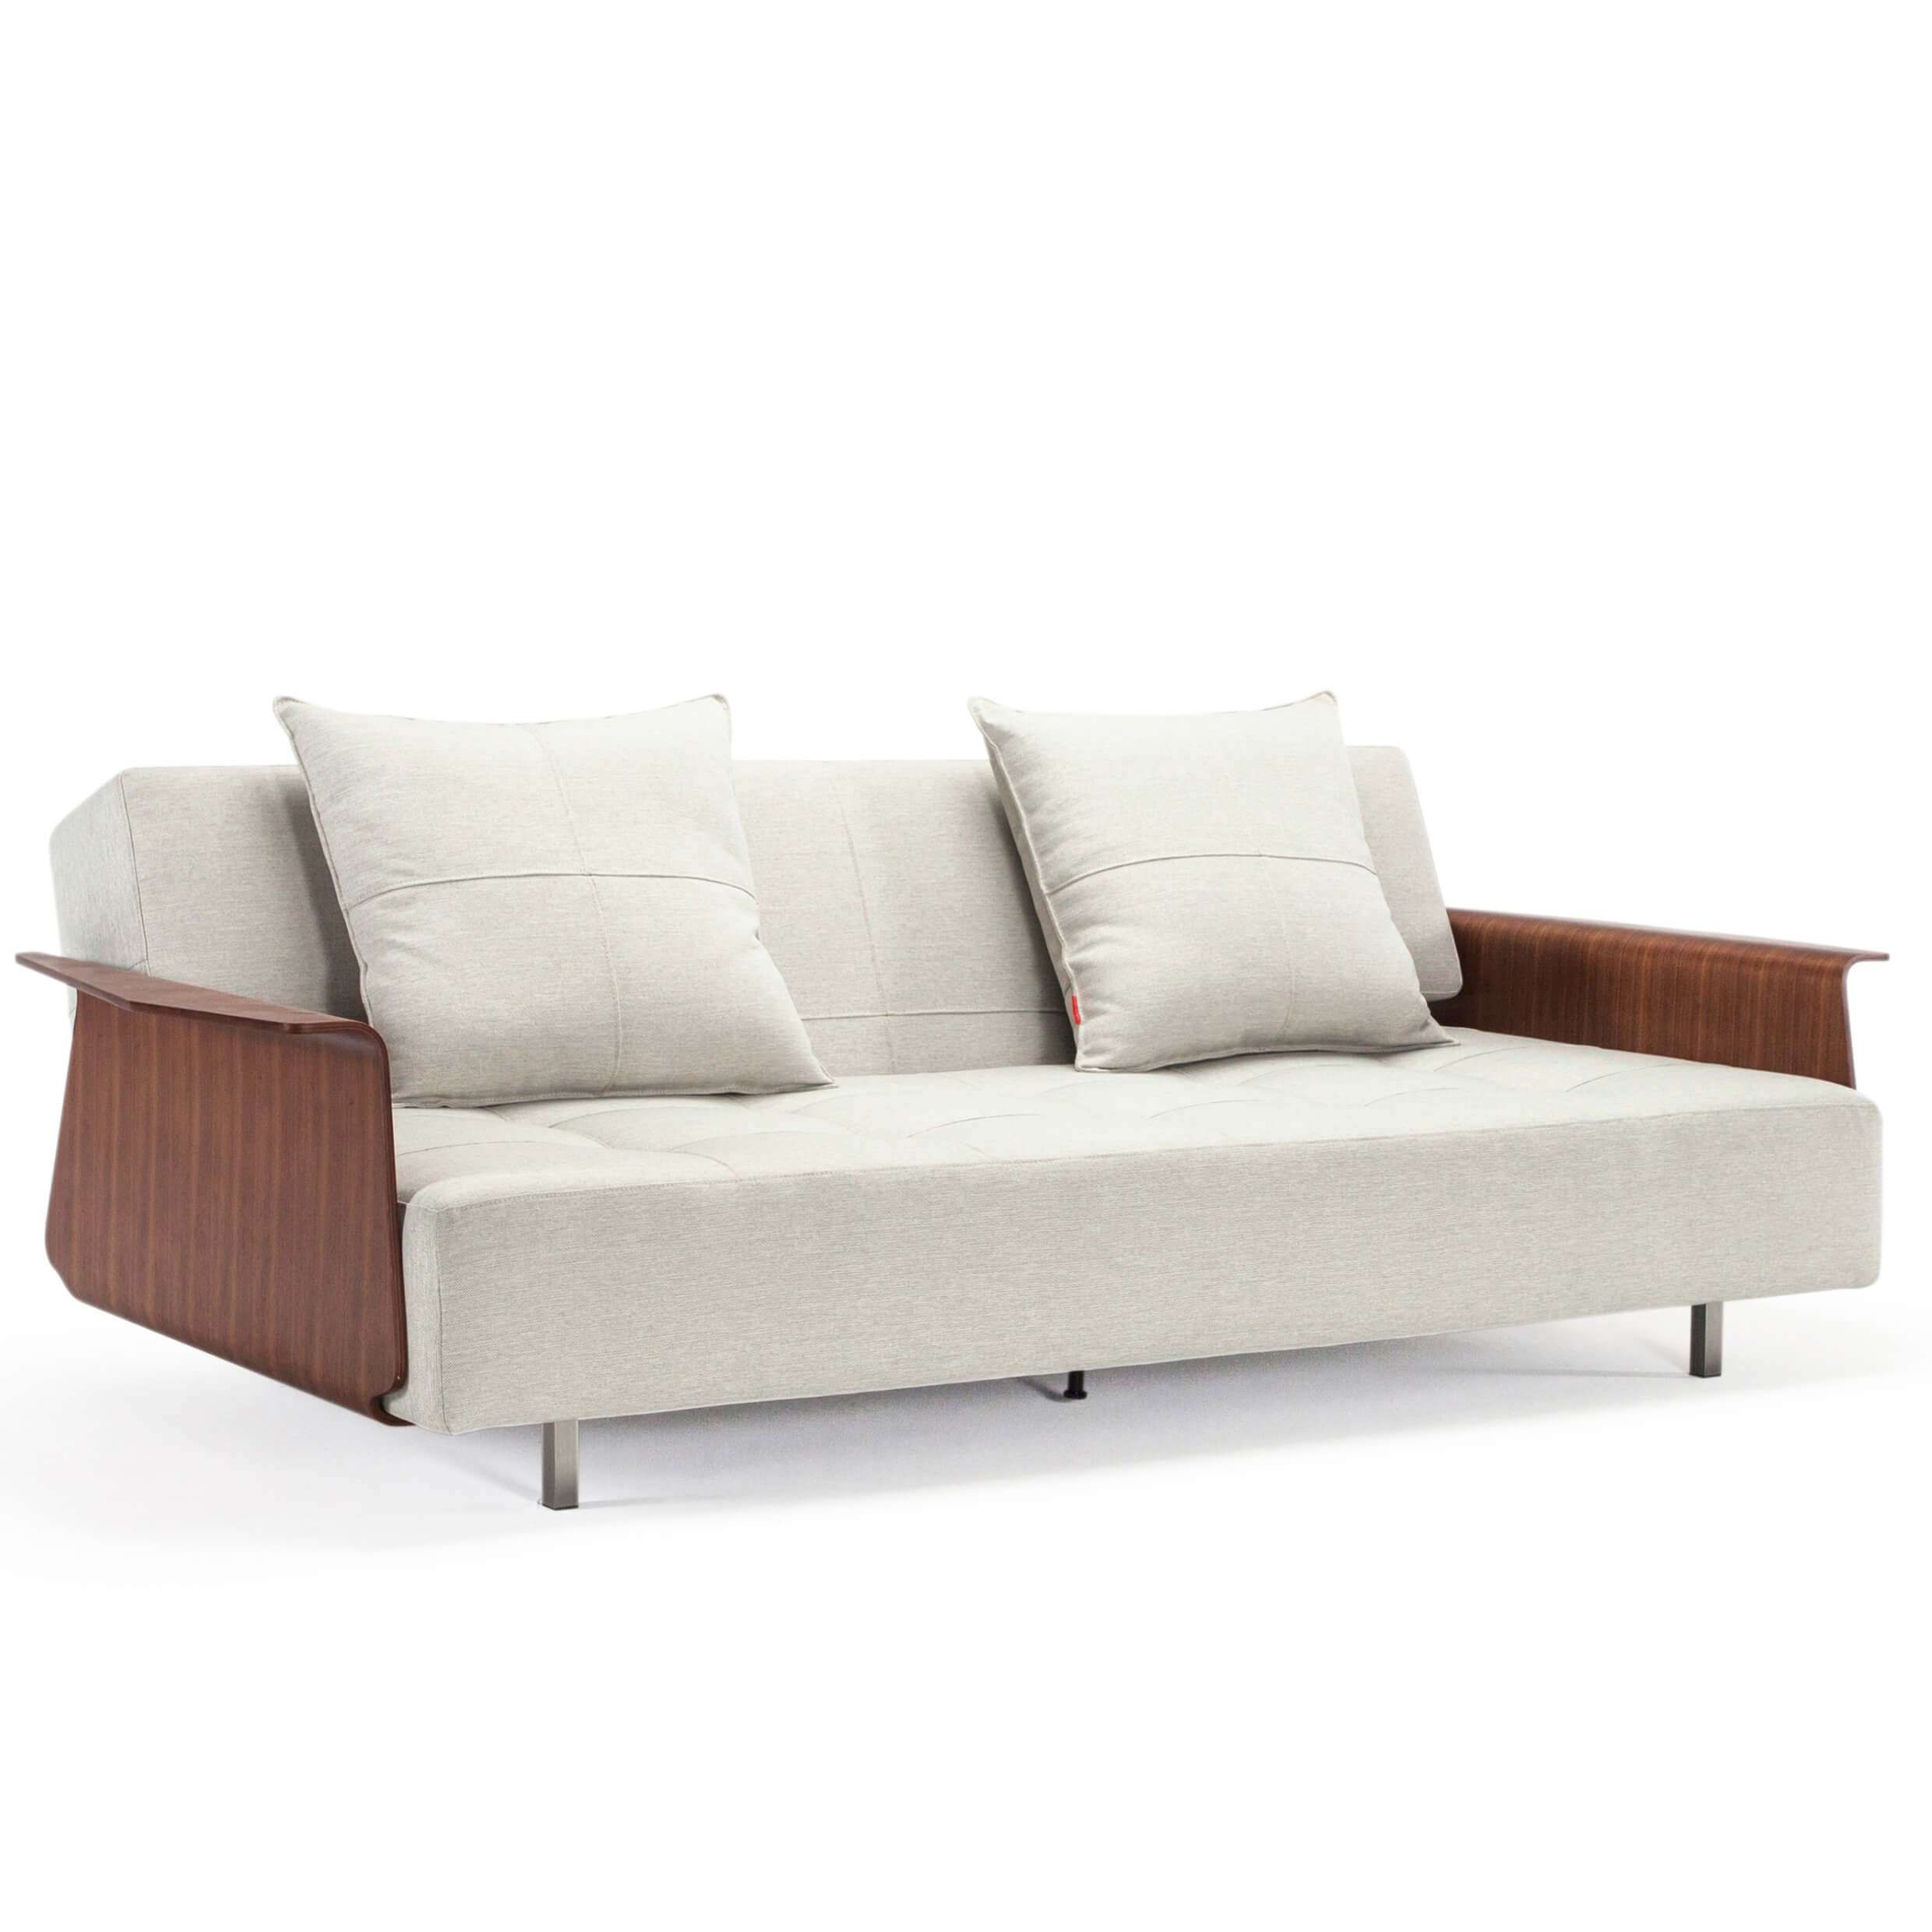 Best Double Luxury Sofa Bed With Images Luxury Sofa Bed 400 x 300